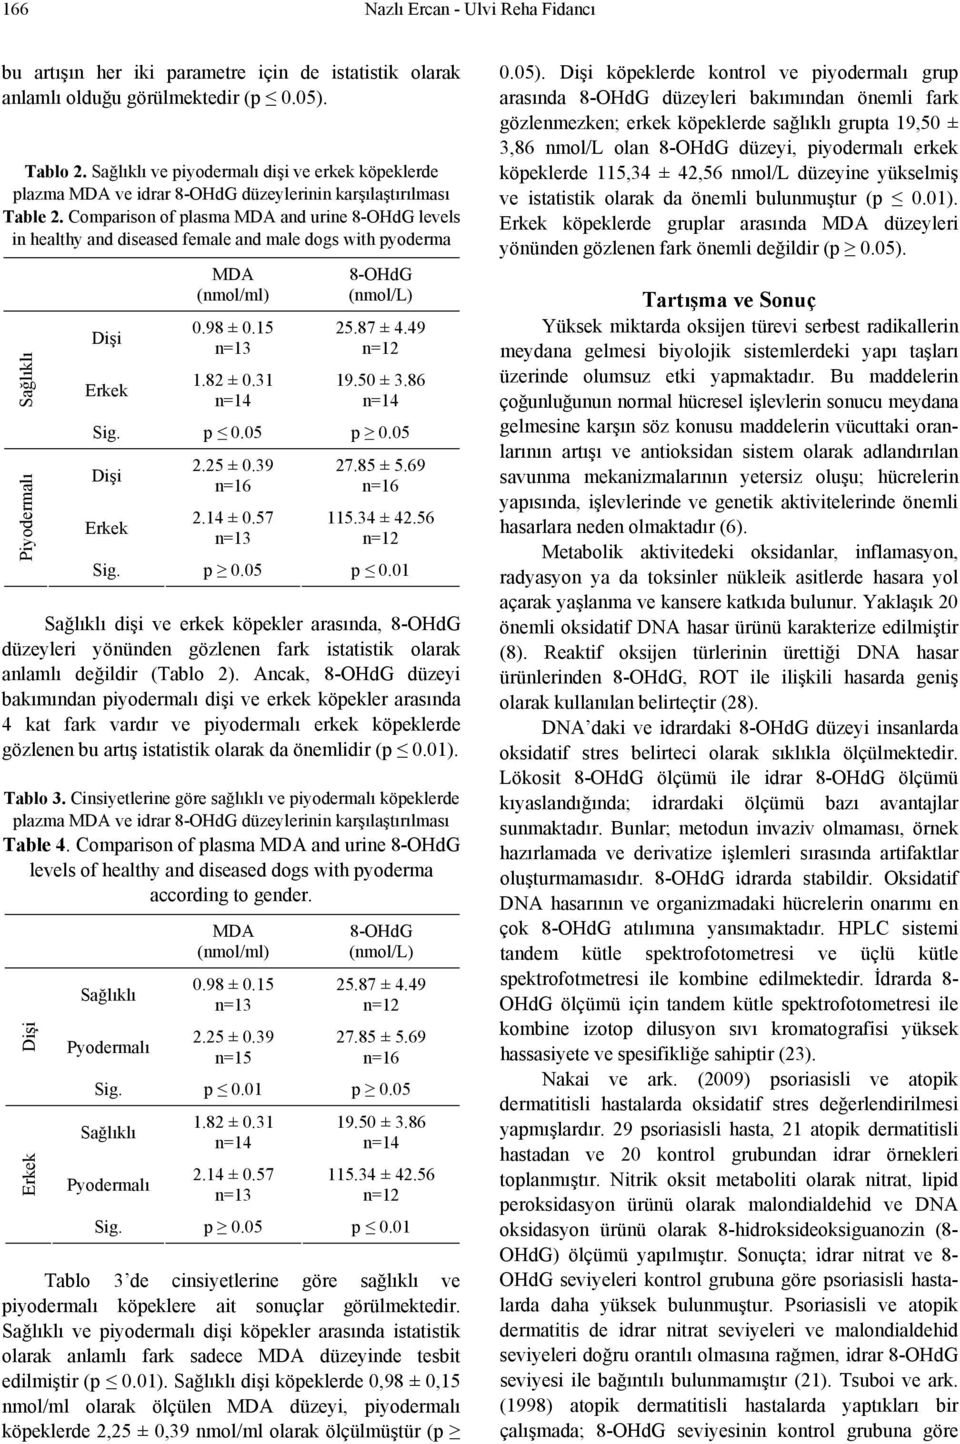 Comparison of plasma MDA and urine 8-OHdG levels in healthy and diseased female and male dogs with pyoderma Piyodermalı Dişi Erkek MDA (nmol/ml) 0.98 ± 0.15 1.82 ± 0.31 8-OHdG (nmol/l) 25.87 ± 4.